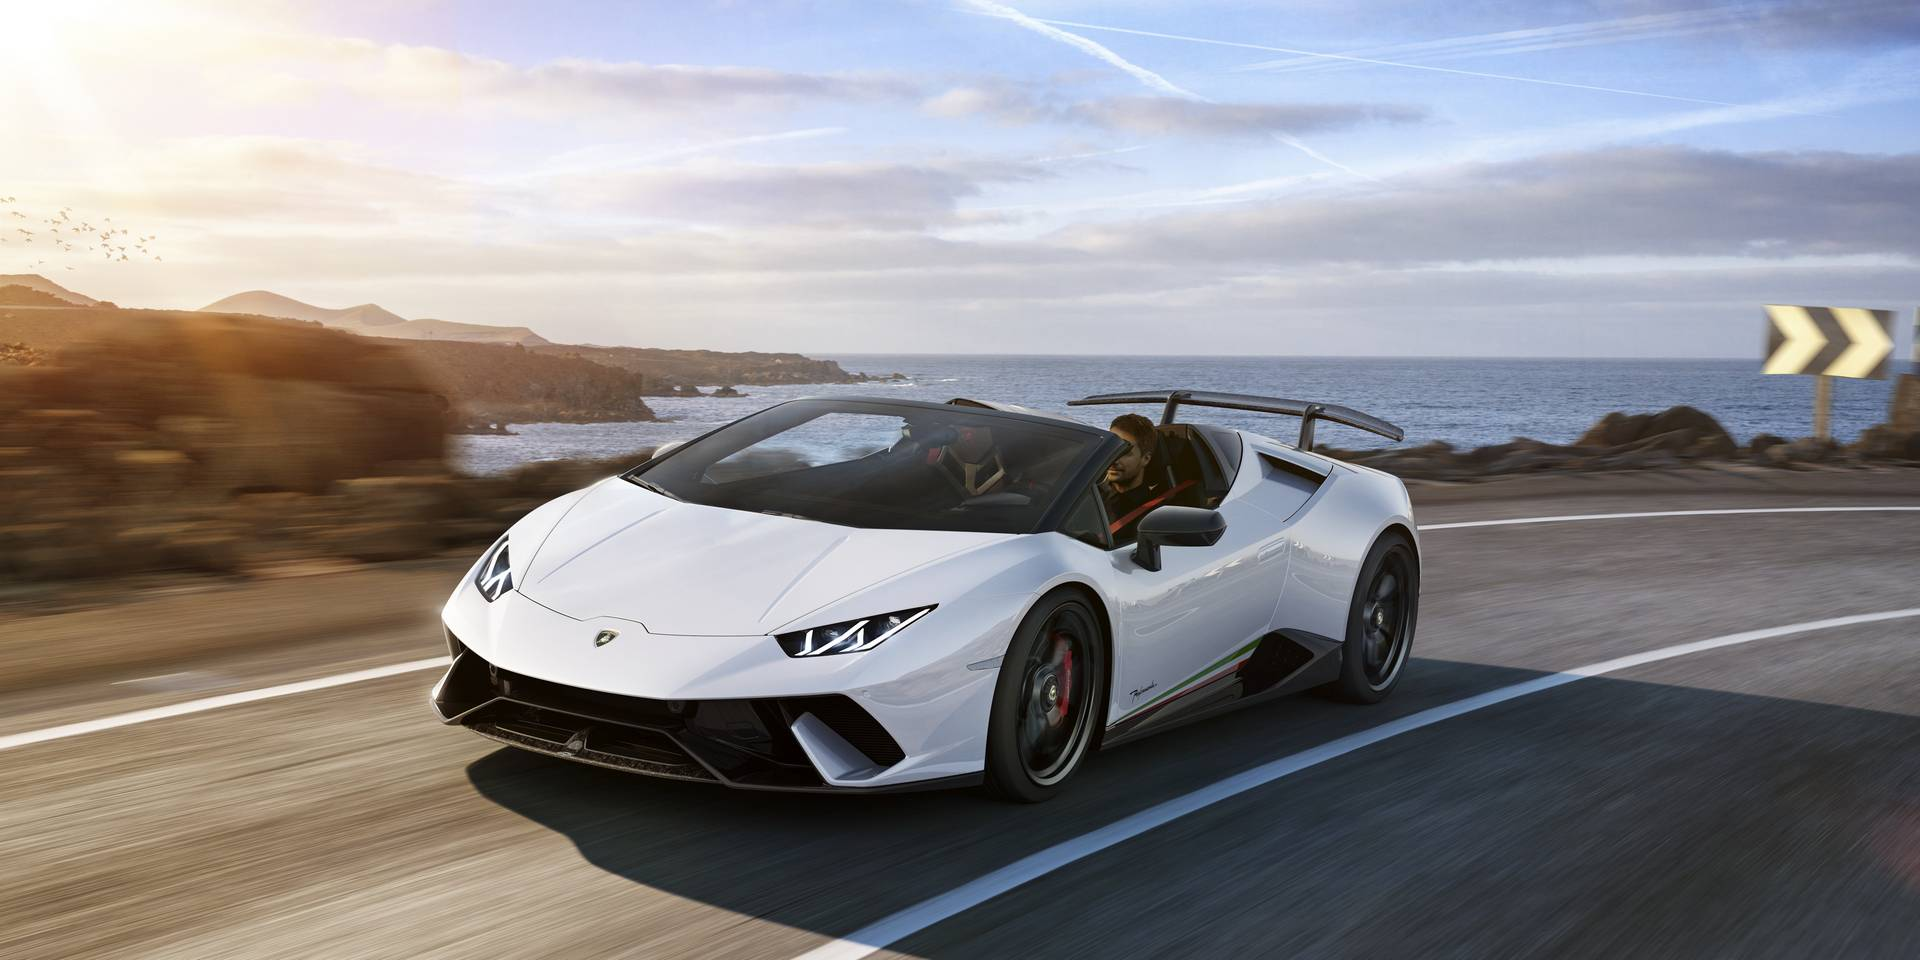 official: 2019 lamborghini huracan performante spyder - gtspirit